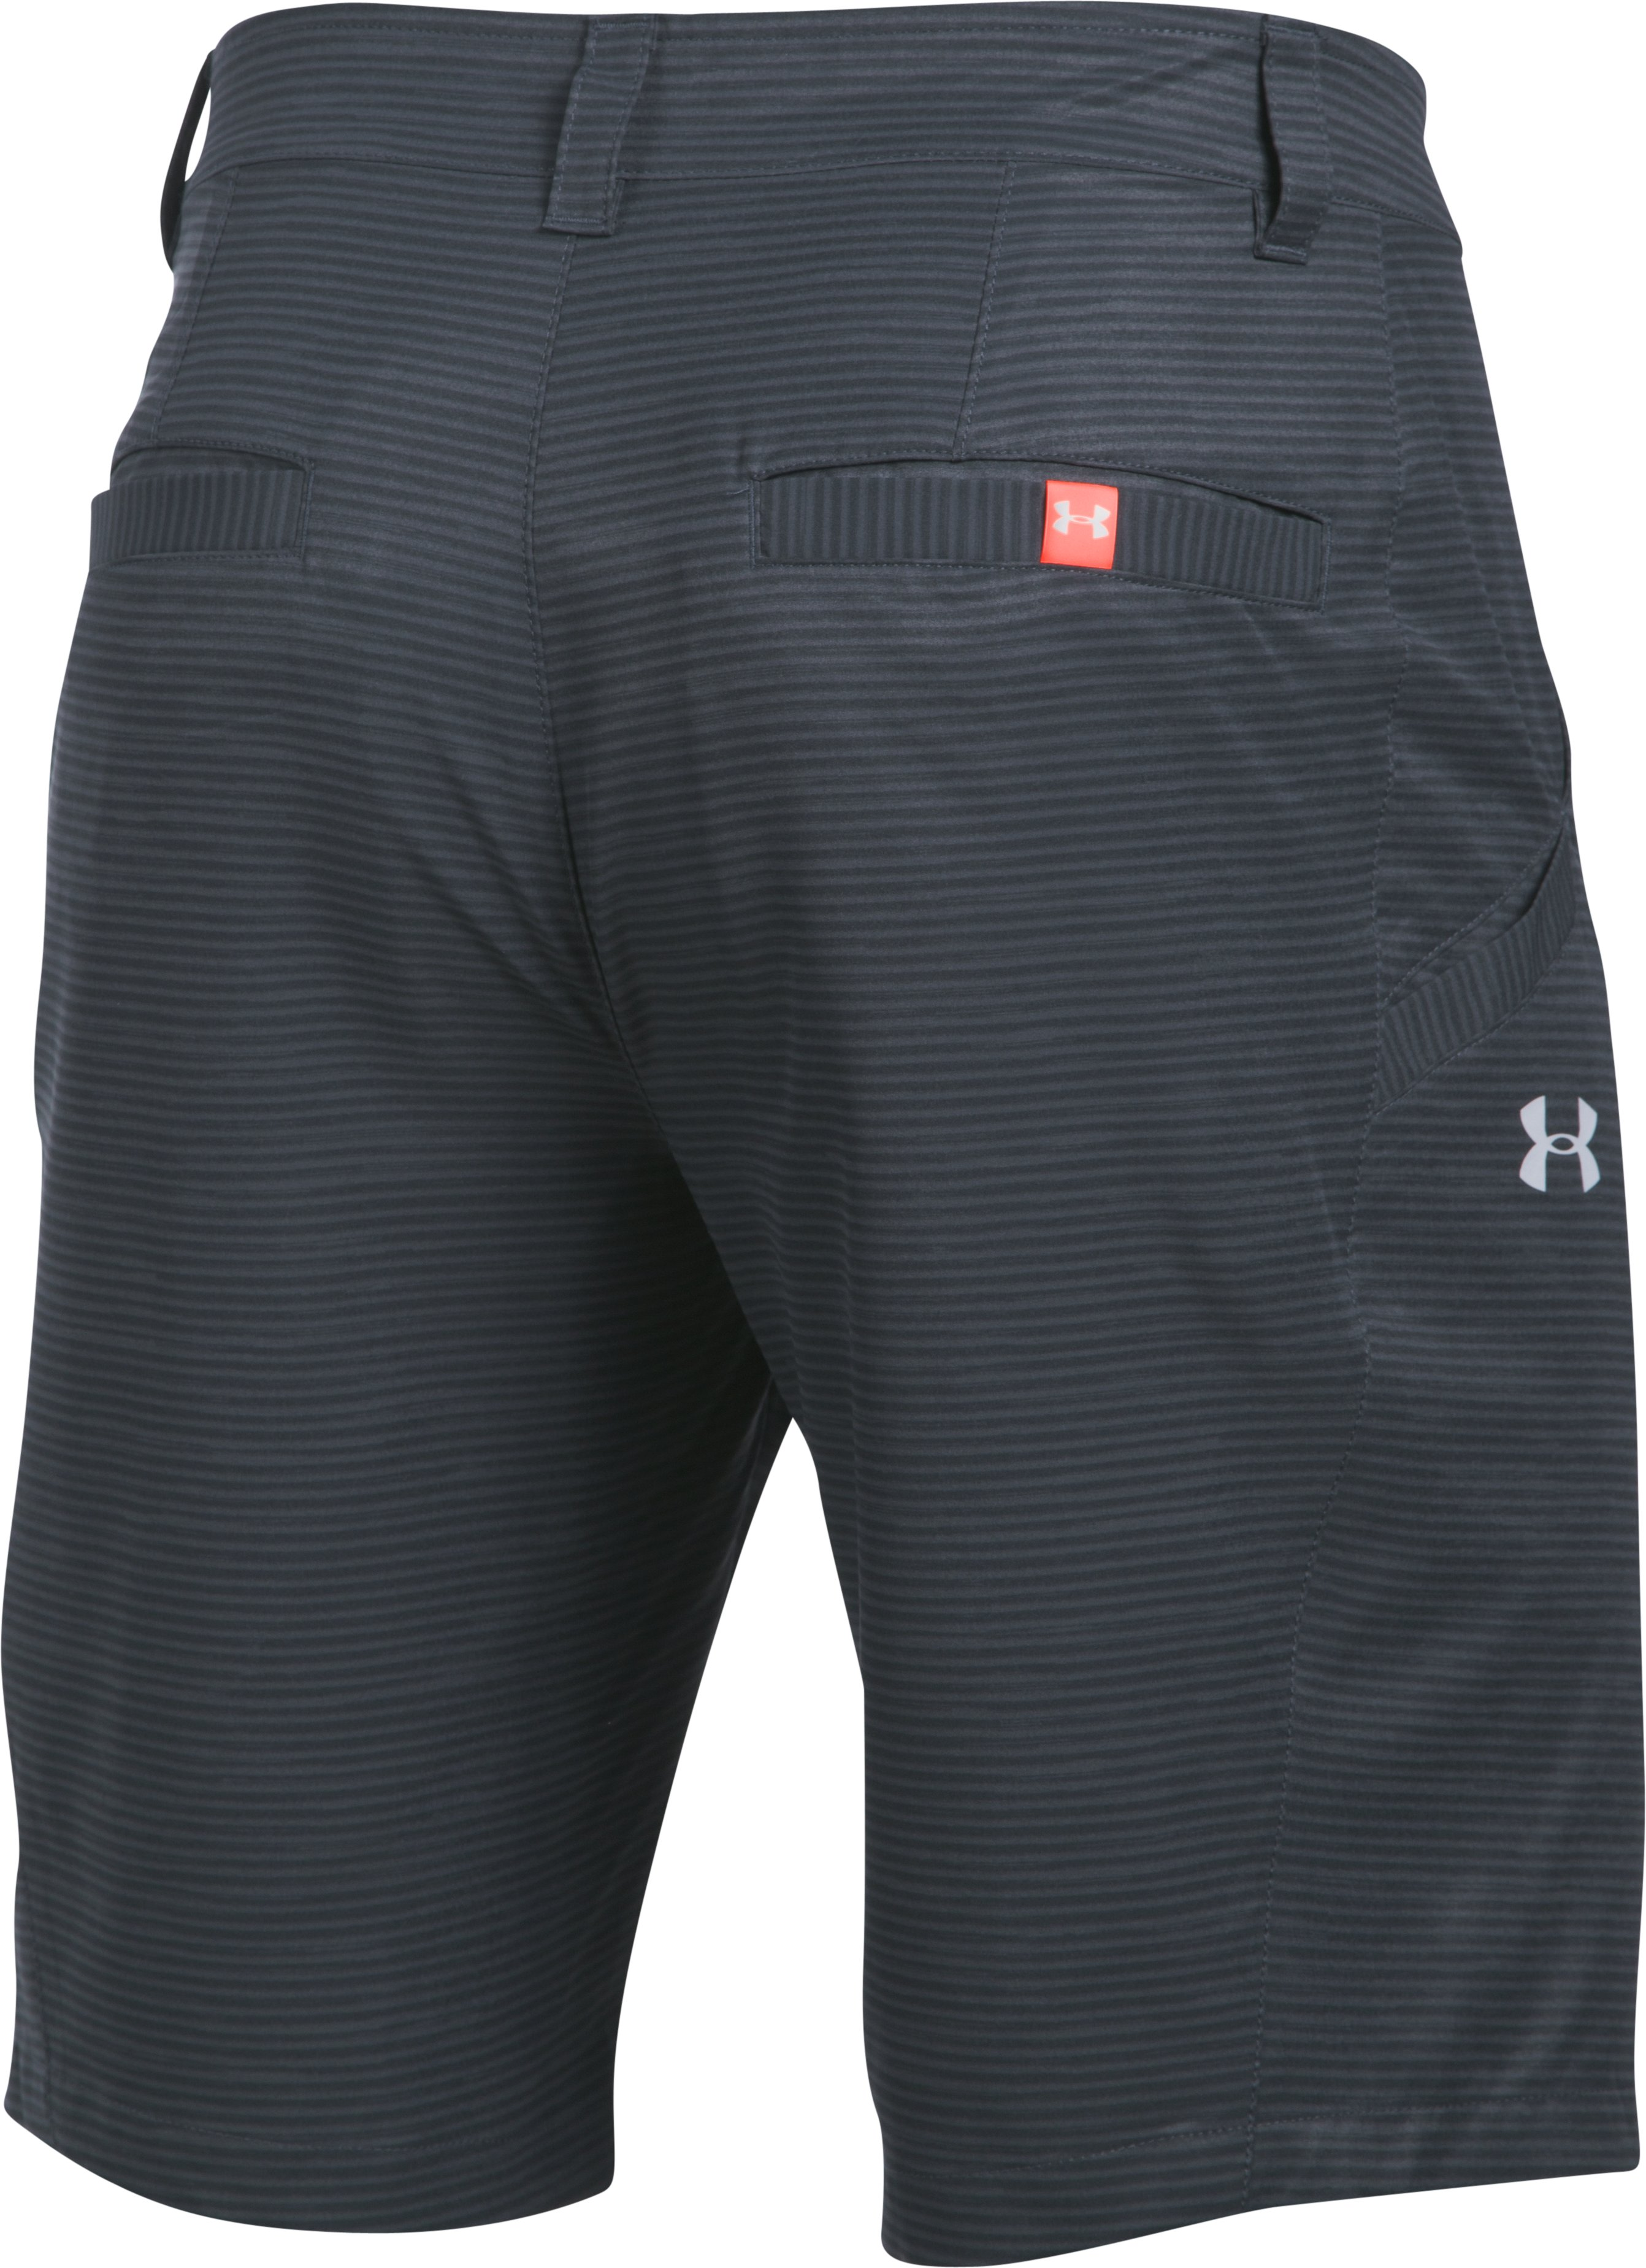 Men's UA Surf & Turf Stretch Amphibious Boardshorts, STEALTH GRAY, undefined